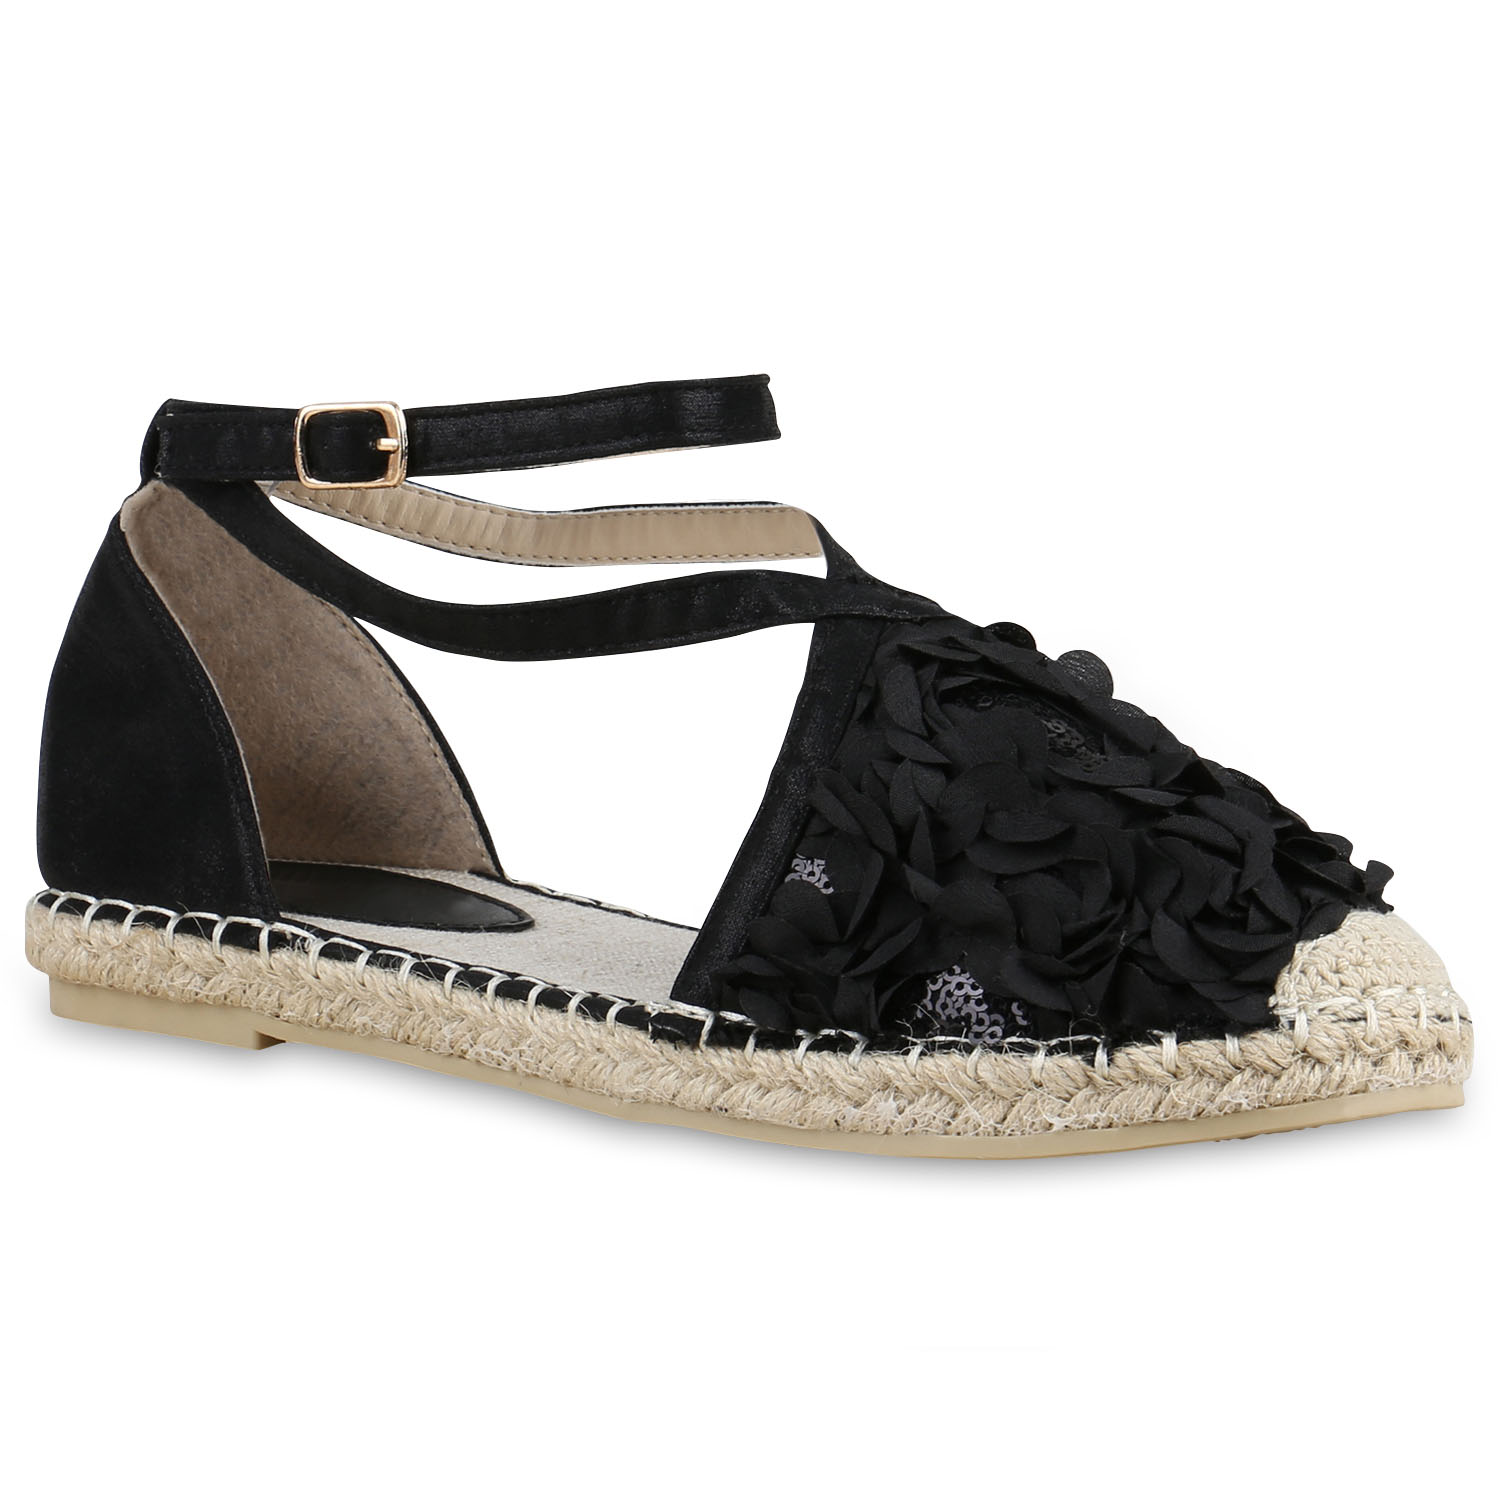 damen sandalen espadrilles blumen pailletten bast sommer schuhe 815188 ebay. Black Bedroom Furniture Sets. Home Design Ideas